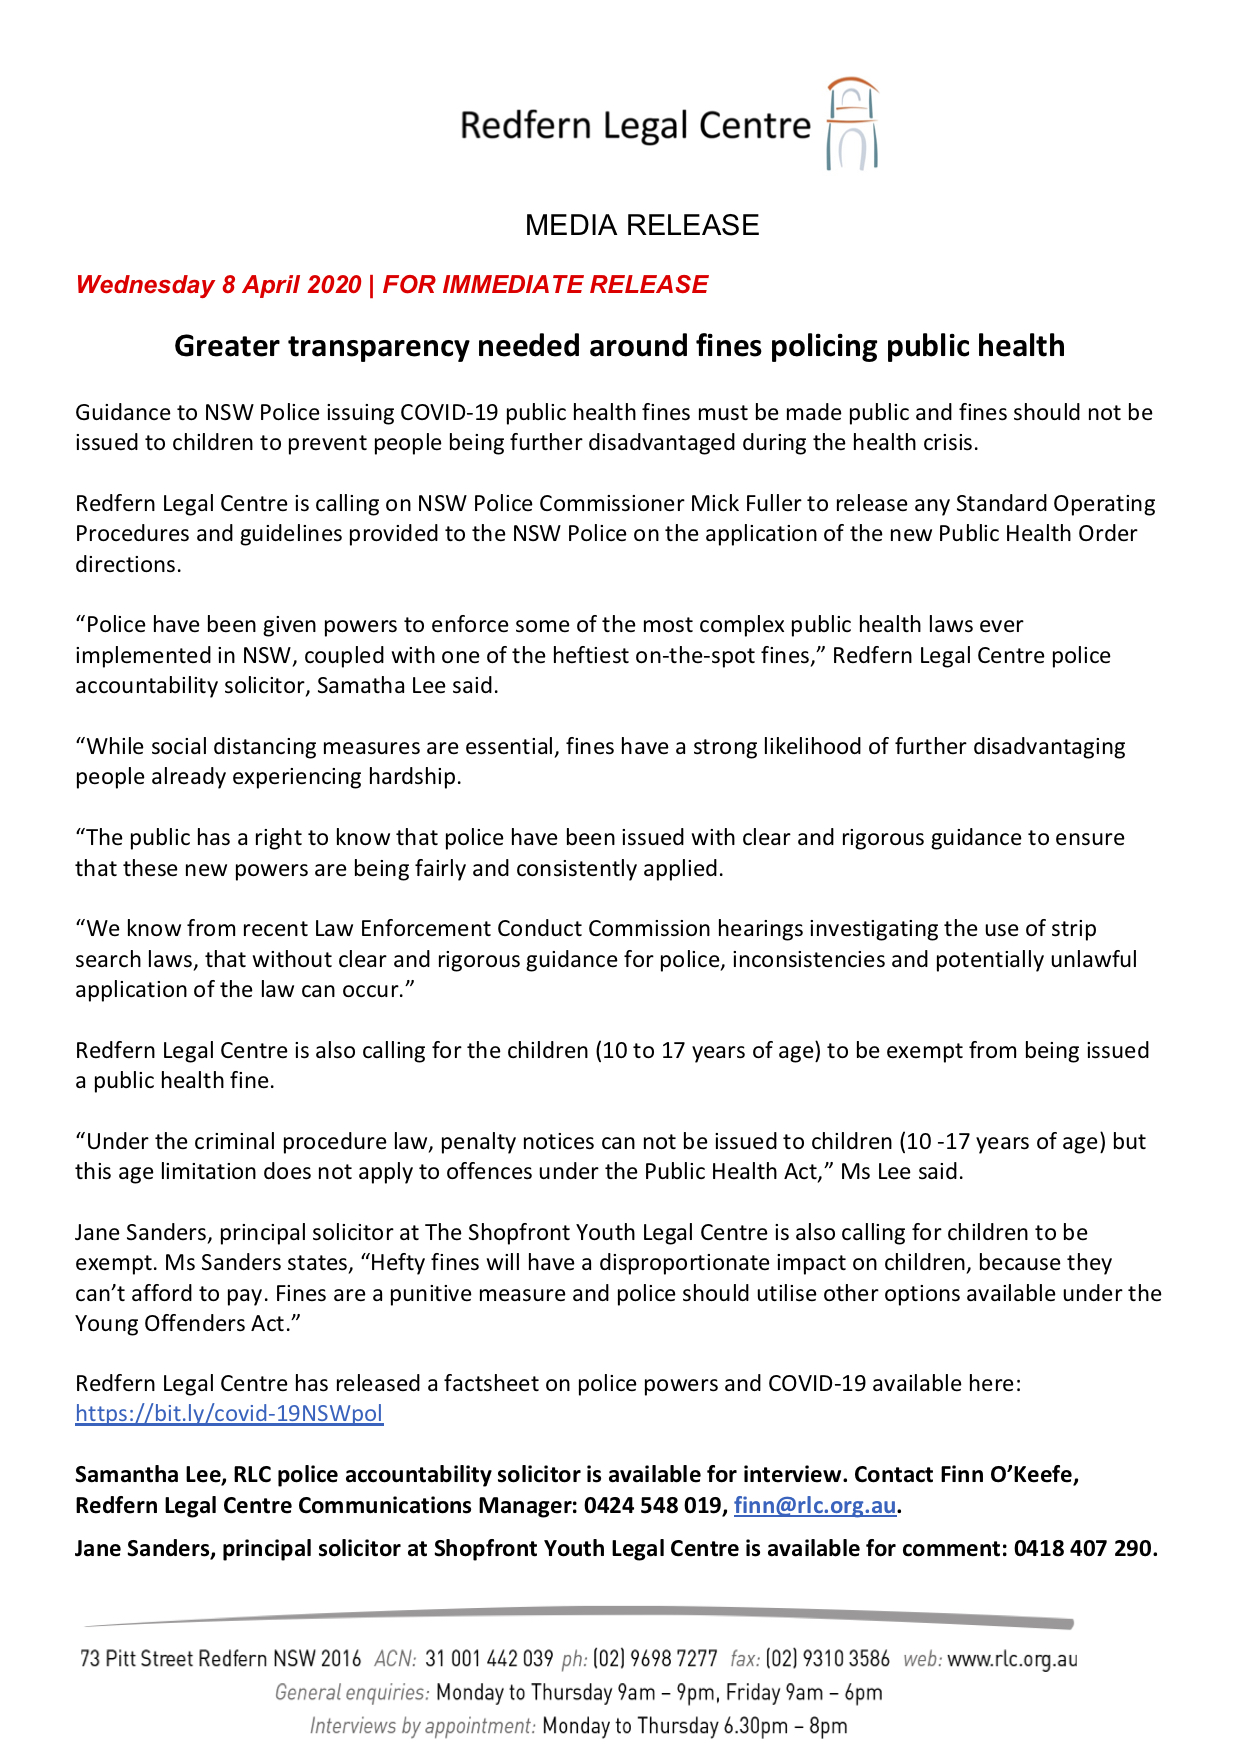 Redfern Legal Centre - Media Release: Greater transparency needed around fines policing public health